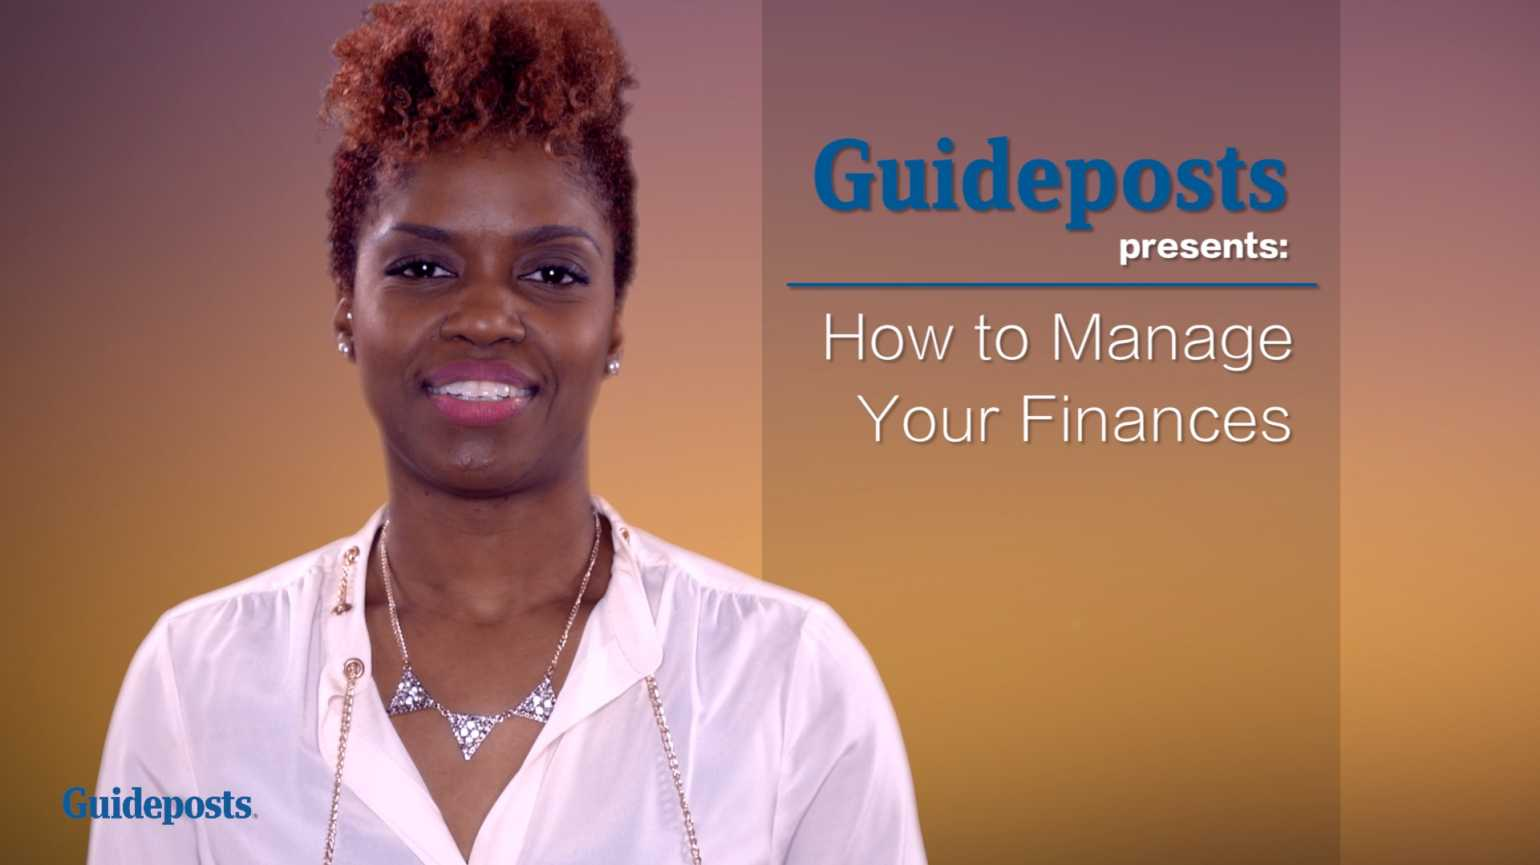 Ty'Ann Brown discusses tips on persevering through financial difficulties.